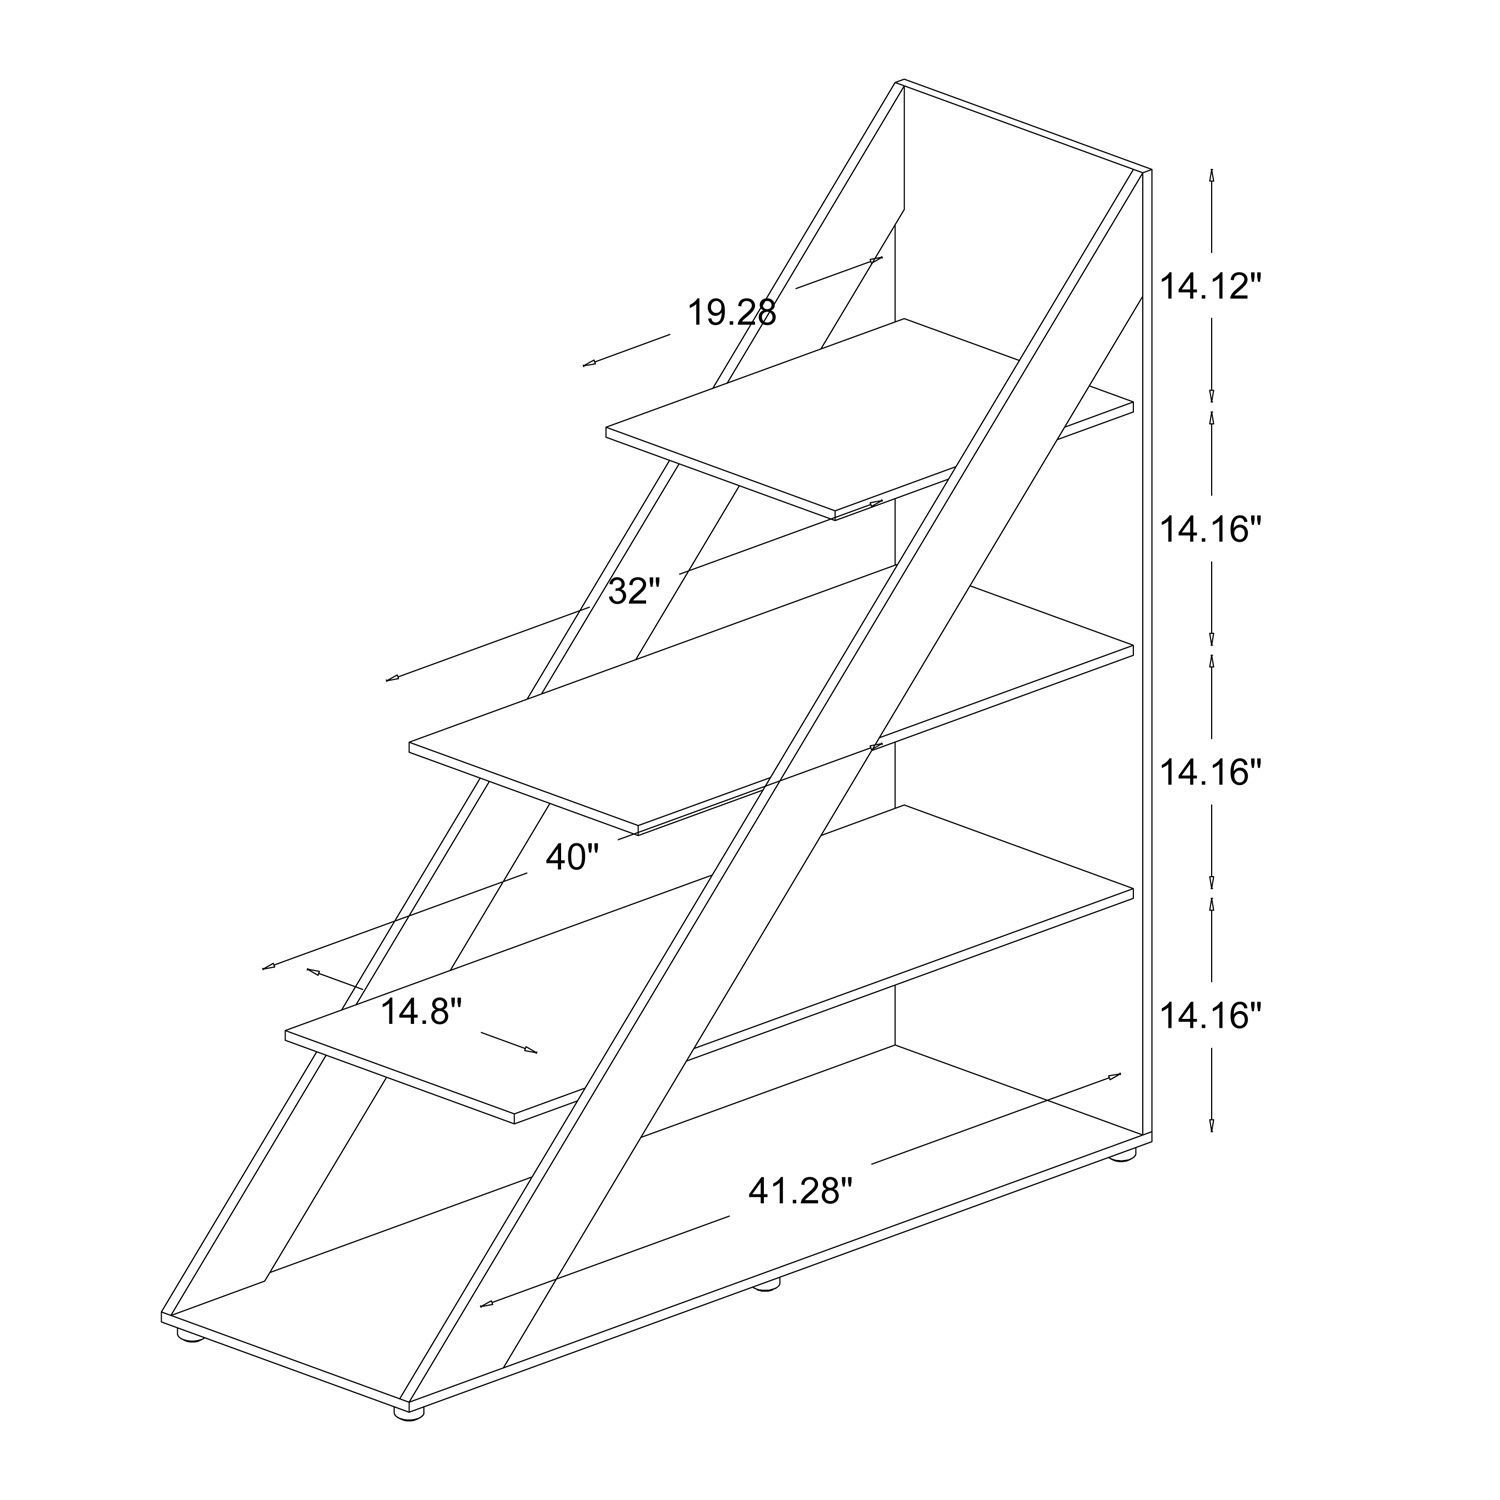 Free up valuable space with this modern shelving unit from Psinta. Featuring a distinctive triangle shape, this abstract shelf creates a unique focal point, which is sure to turn heads. This shelf is